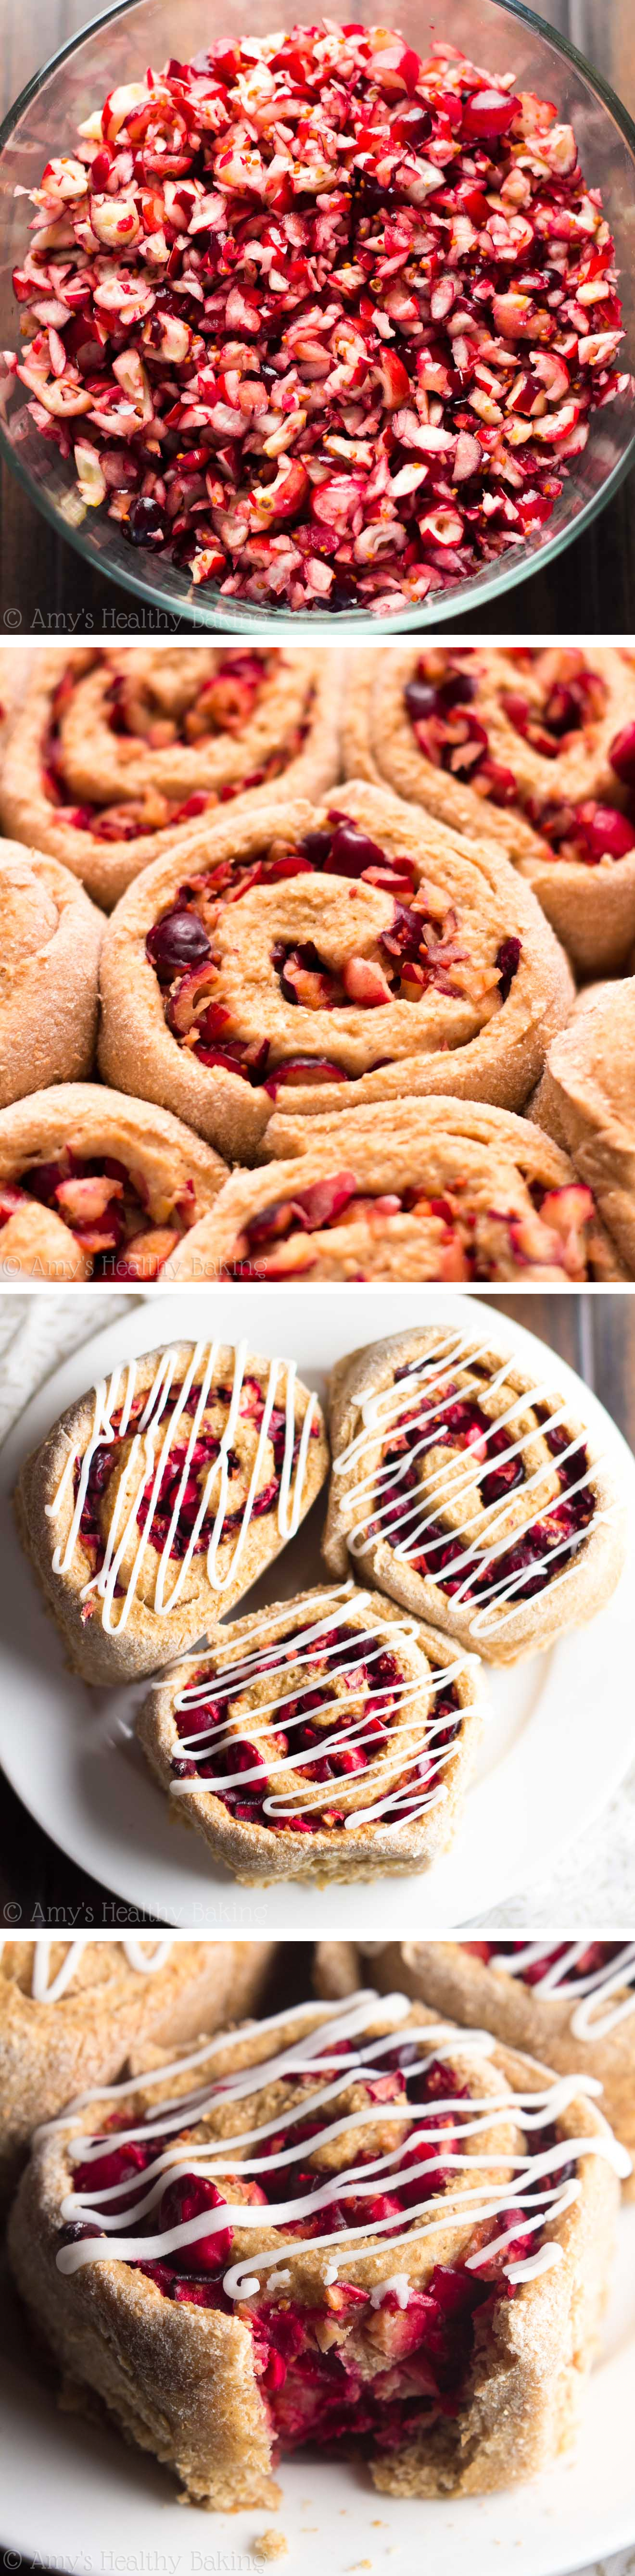 These healthy pastries are so tender & perfect for holiday breakfasts! Plus a step-by-step VIDEO showing just how easy they are to make!